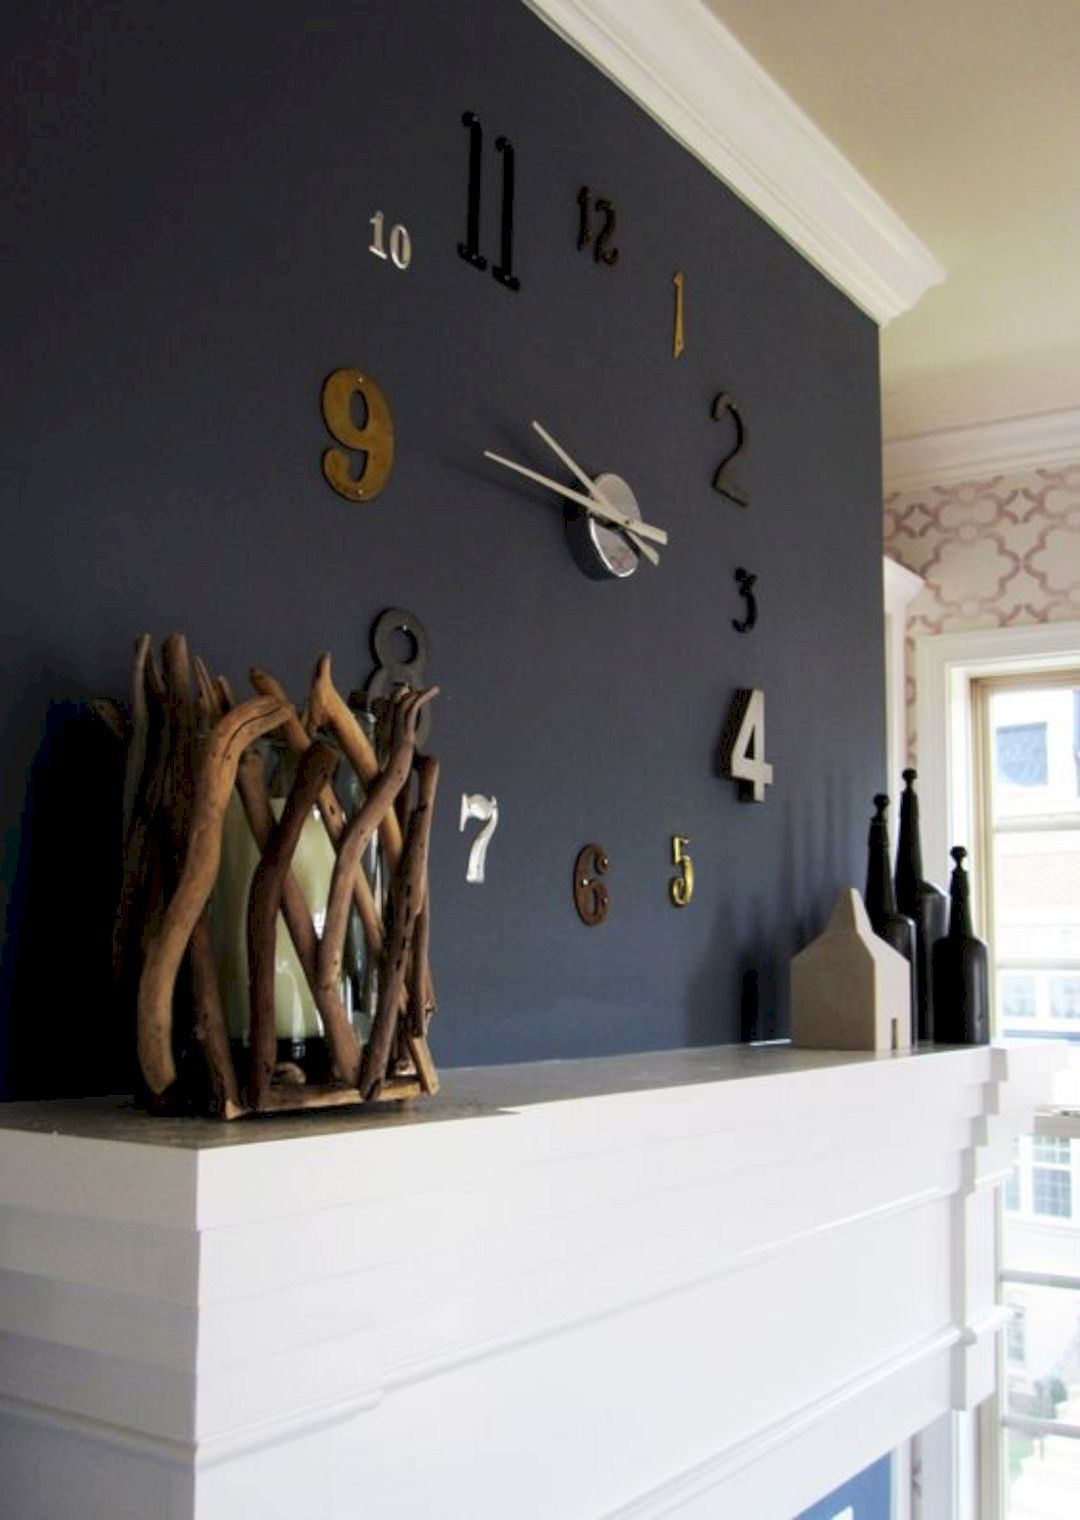 130 creative wall clock design ideas creative walls creative and